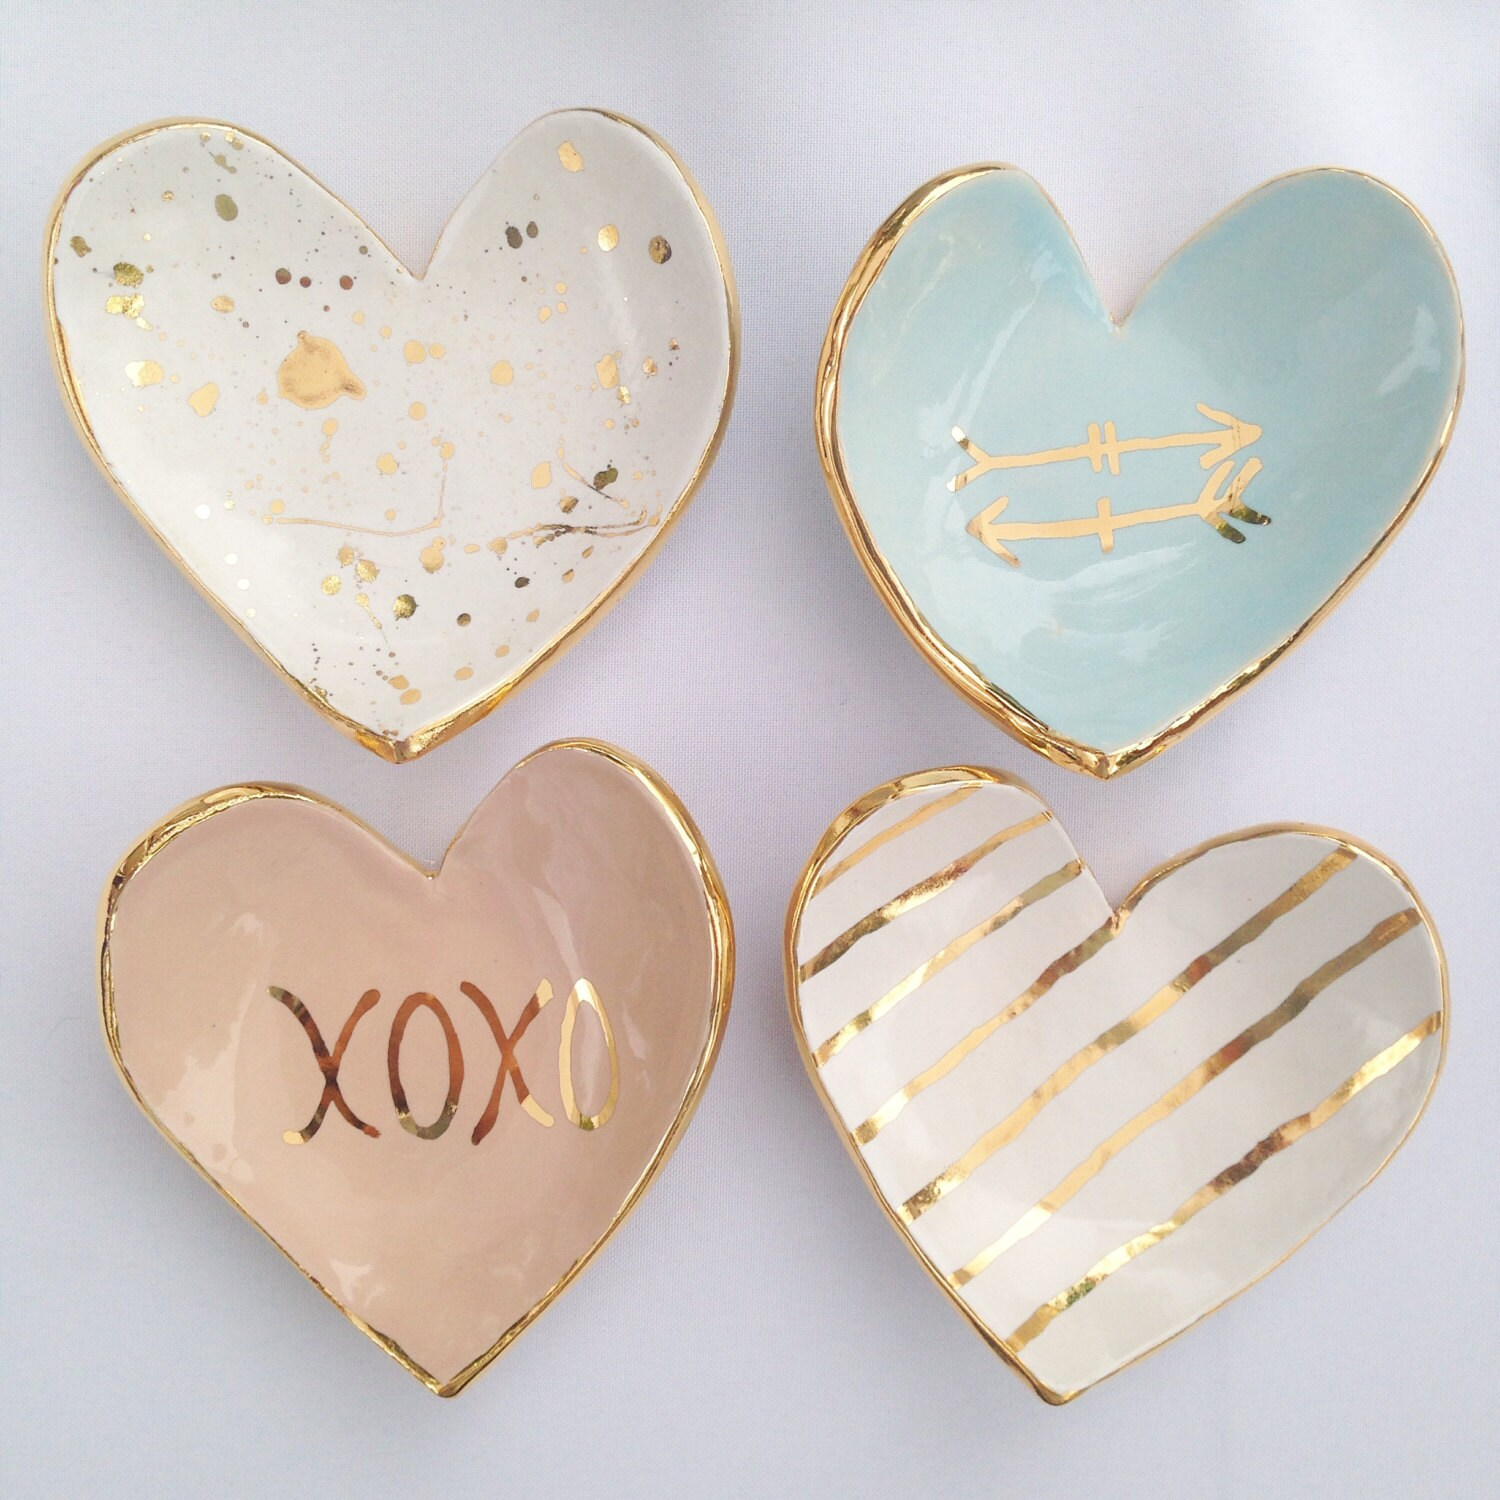 Heart shaped handmade ceramic ring dish 22k gold luster for Heart shaped jewelry dish